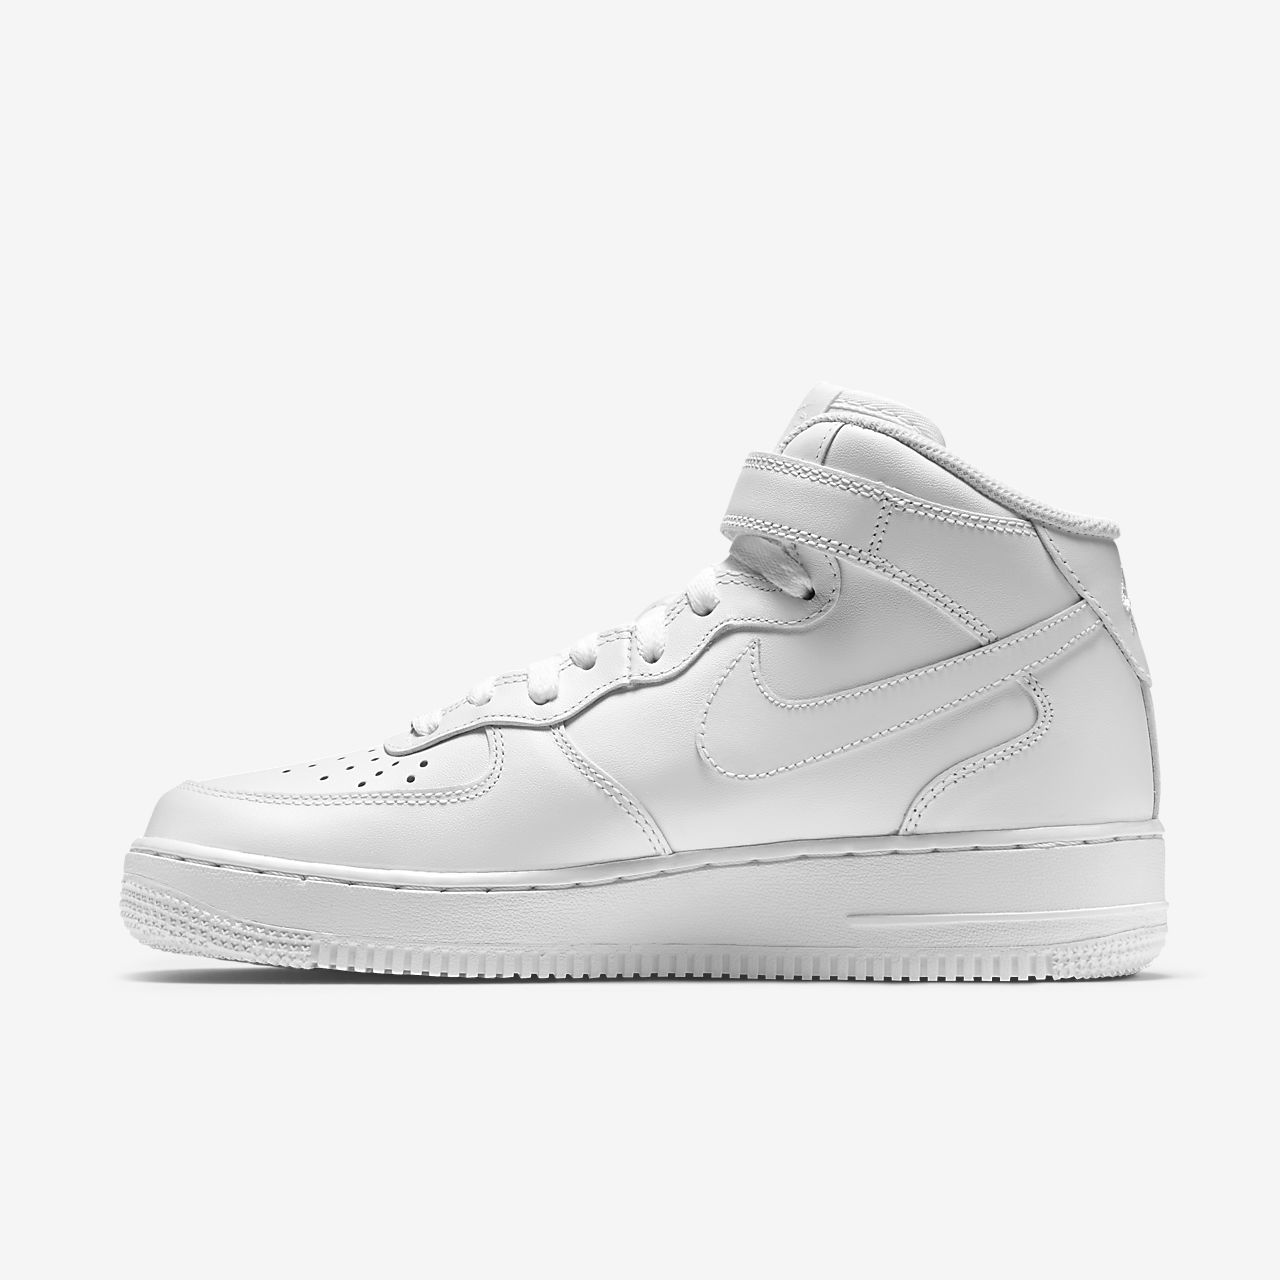 nike air force 1 07 mid women's nz